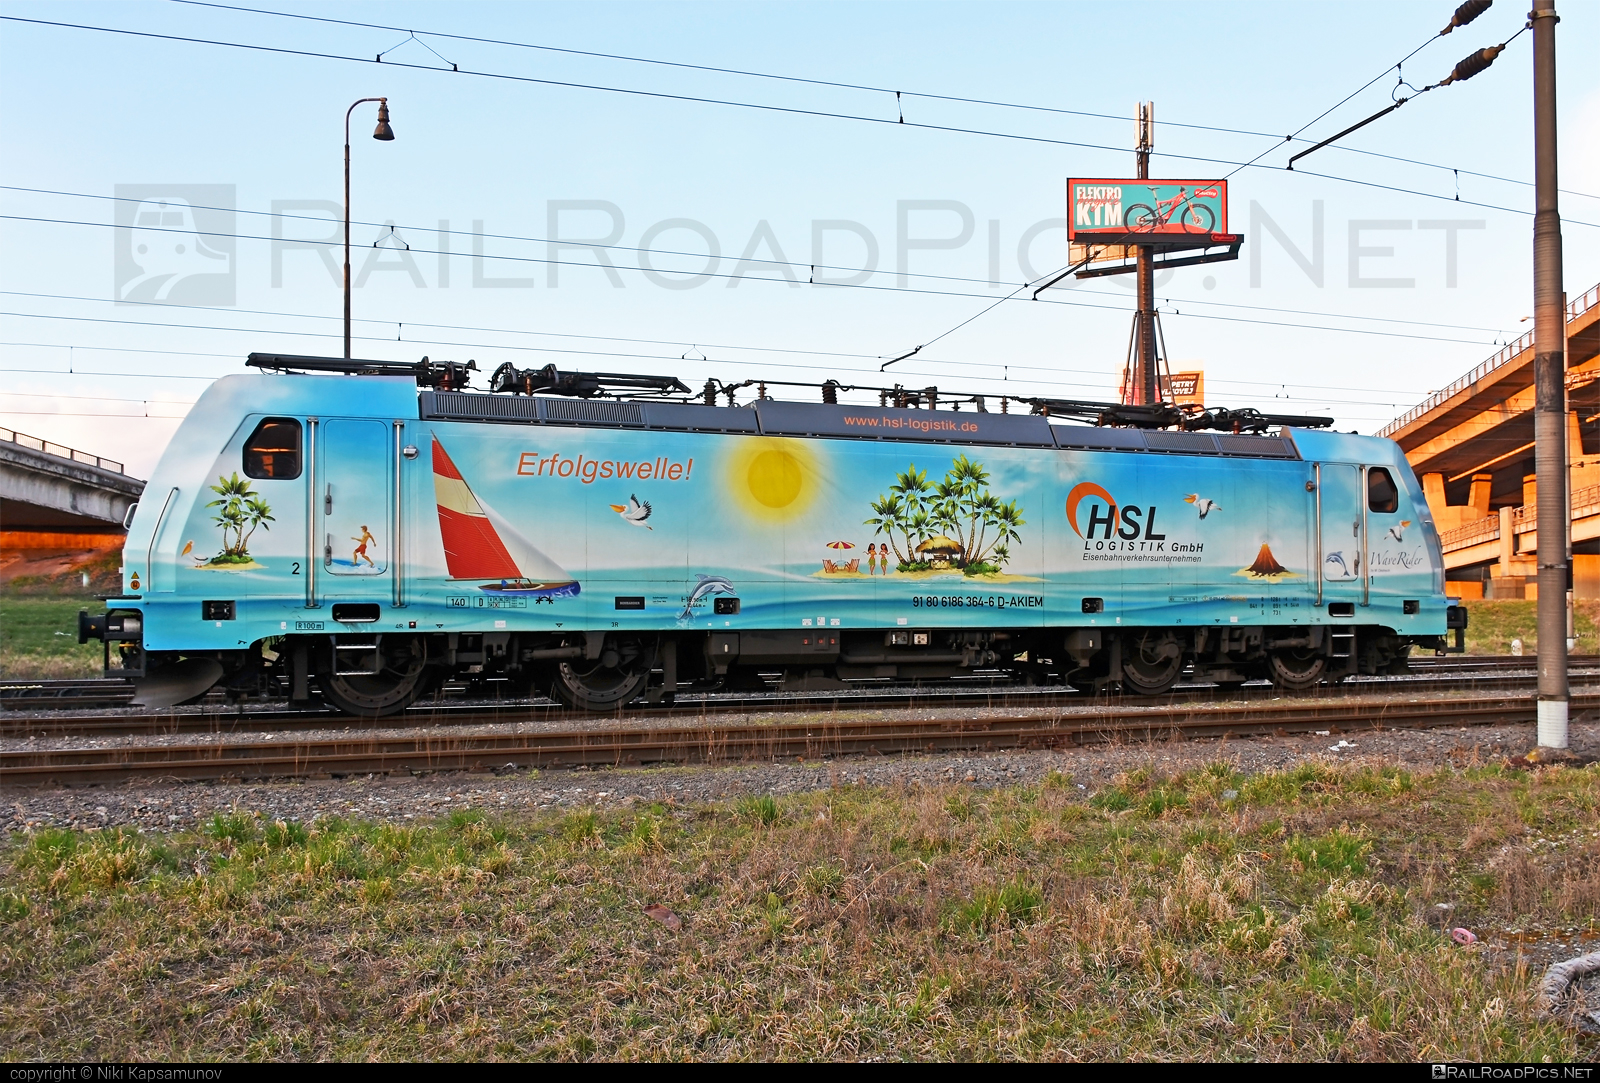 Bombardier TRAXX F140 MS - 186 364-6 operated by LOKORAIL, a.s. #akiem #akiemsas #bombardier #bombardiertraxx #hsl #hsllogistik #lokorail #lrl #traxx #traxxf140 #traxxf140ms